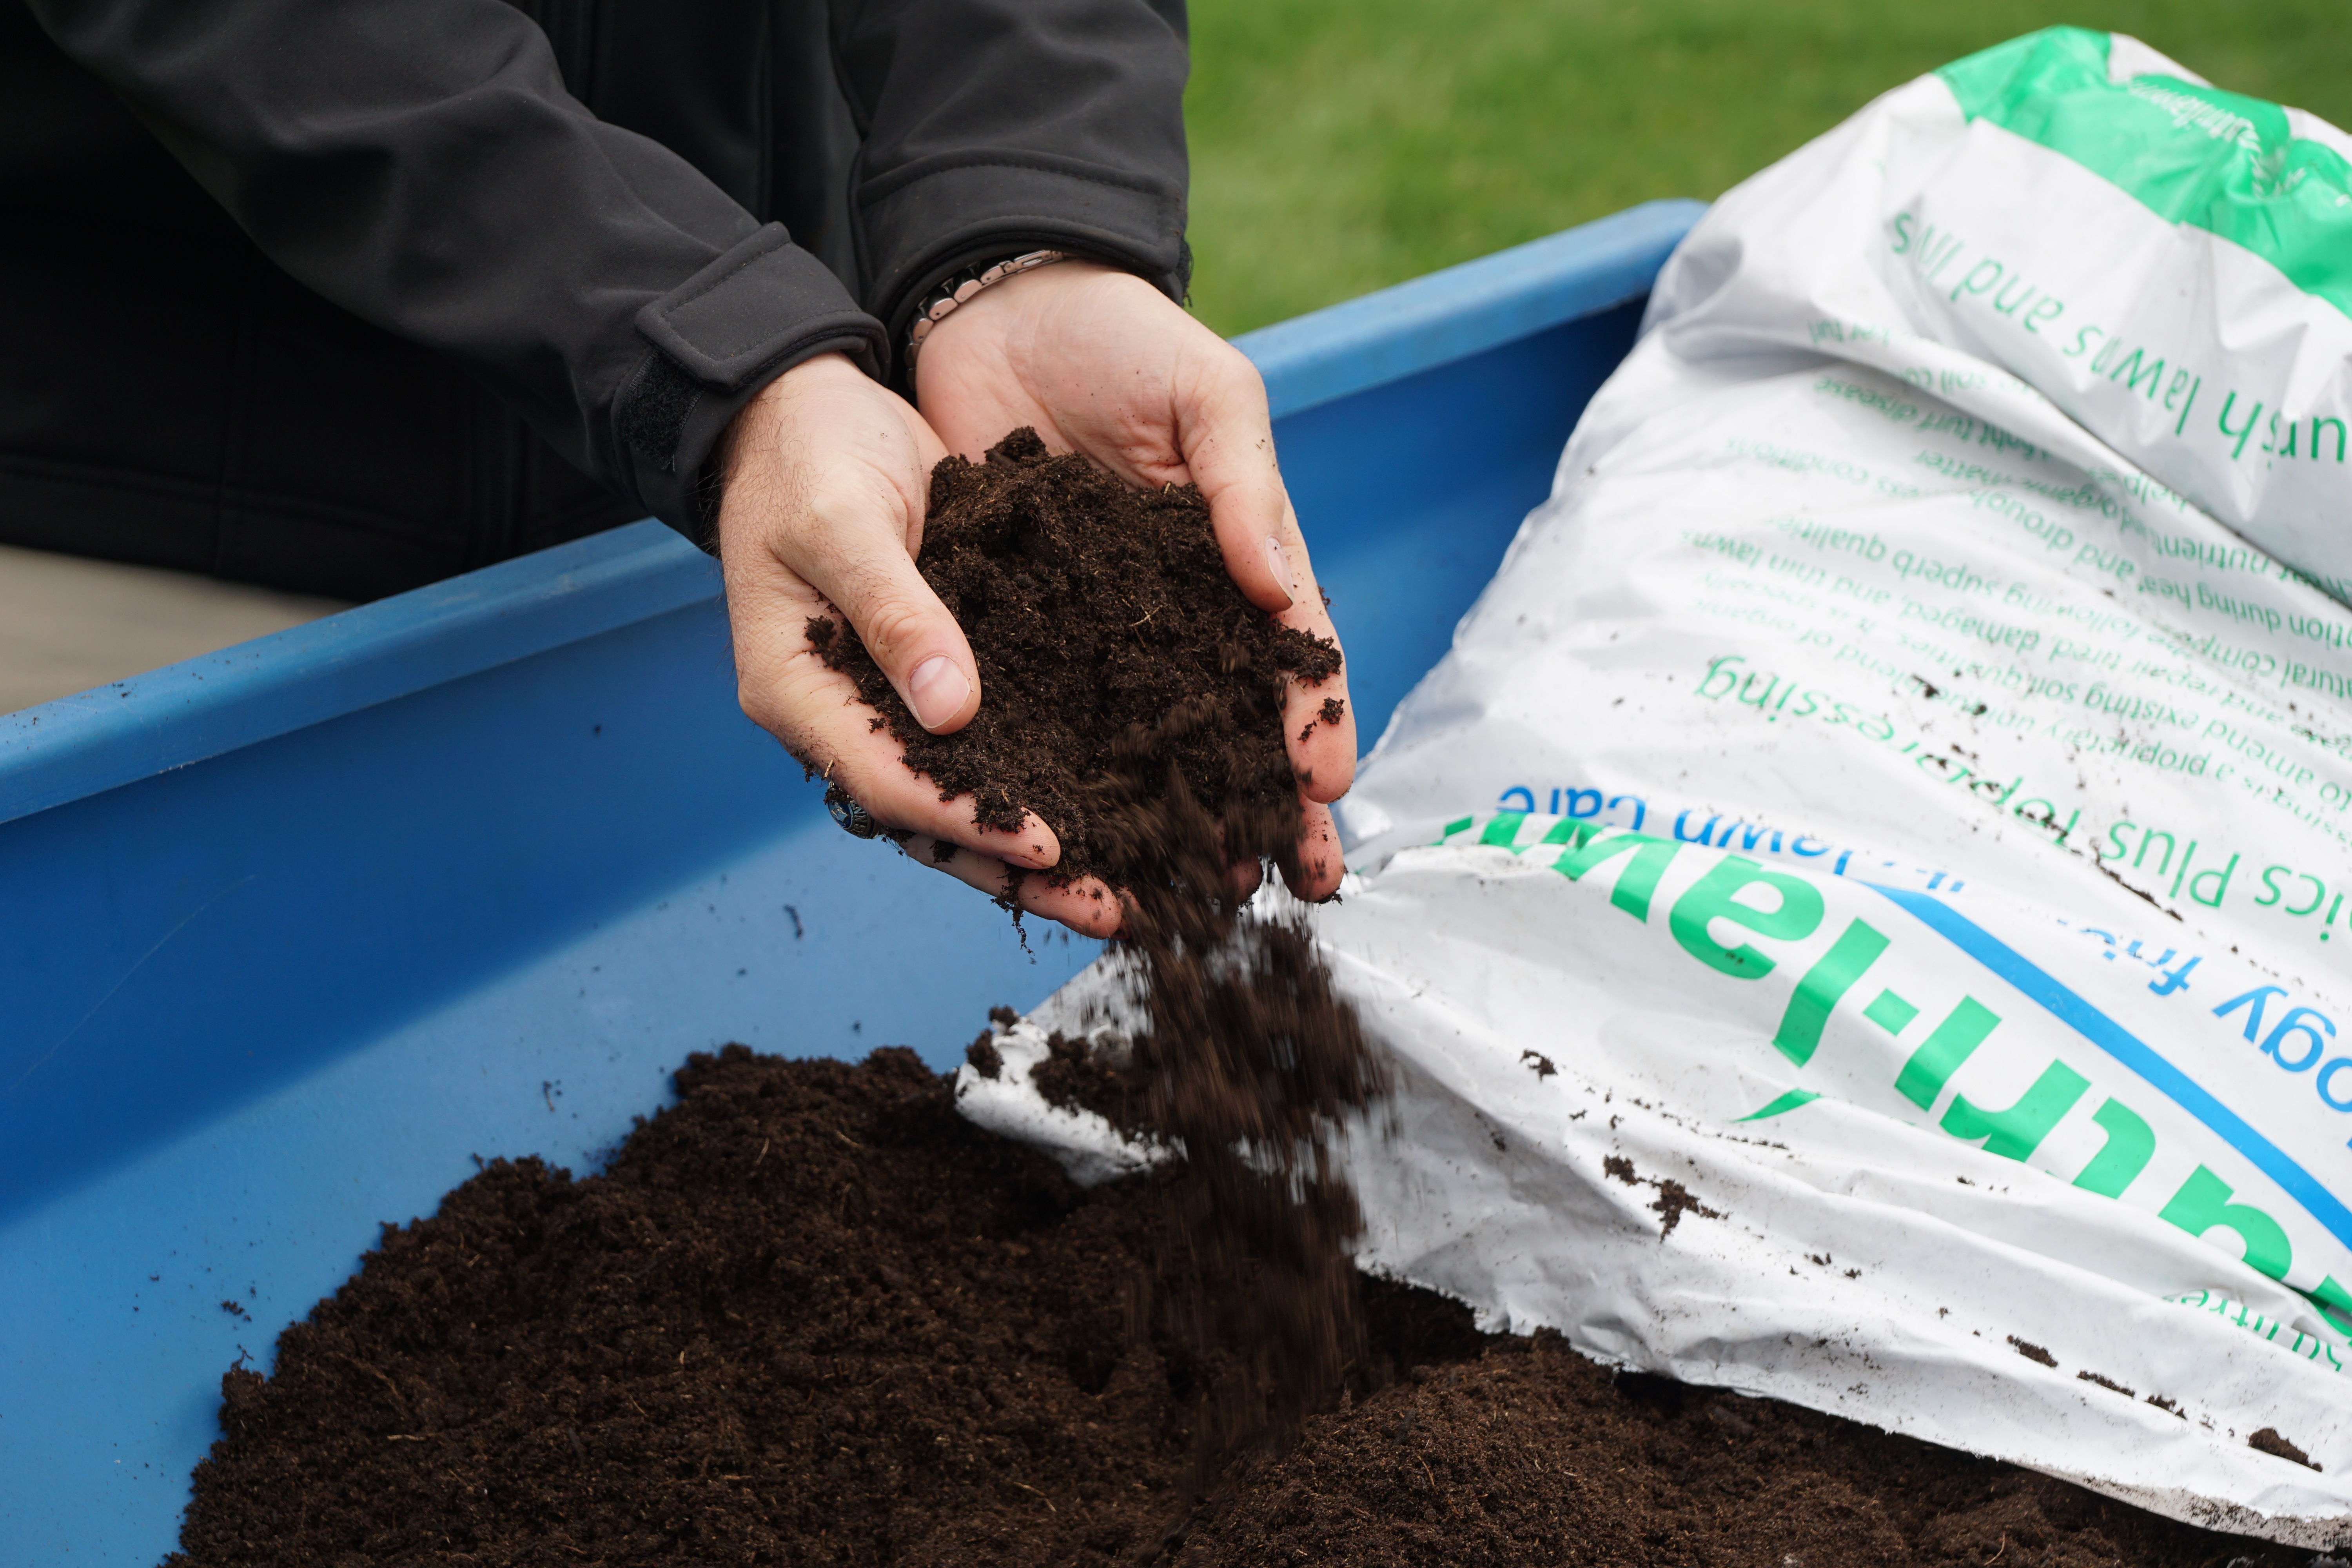 nutrilawn-top-dressing-pouring-from-hands.jpg